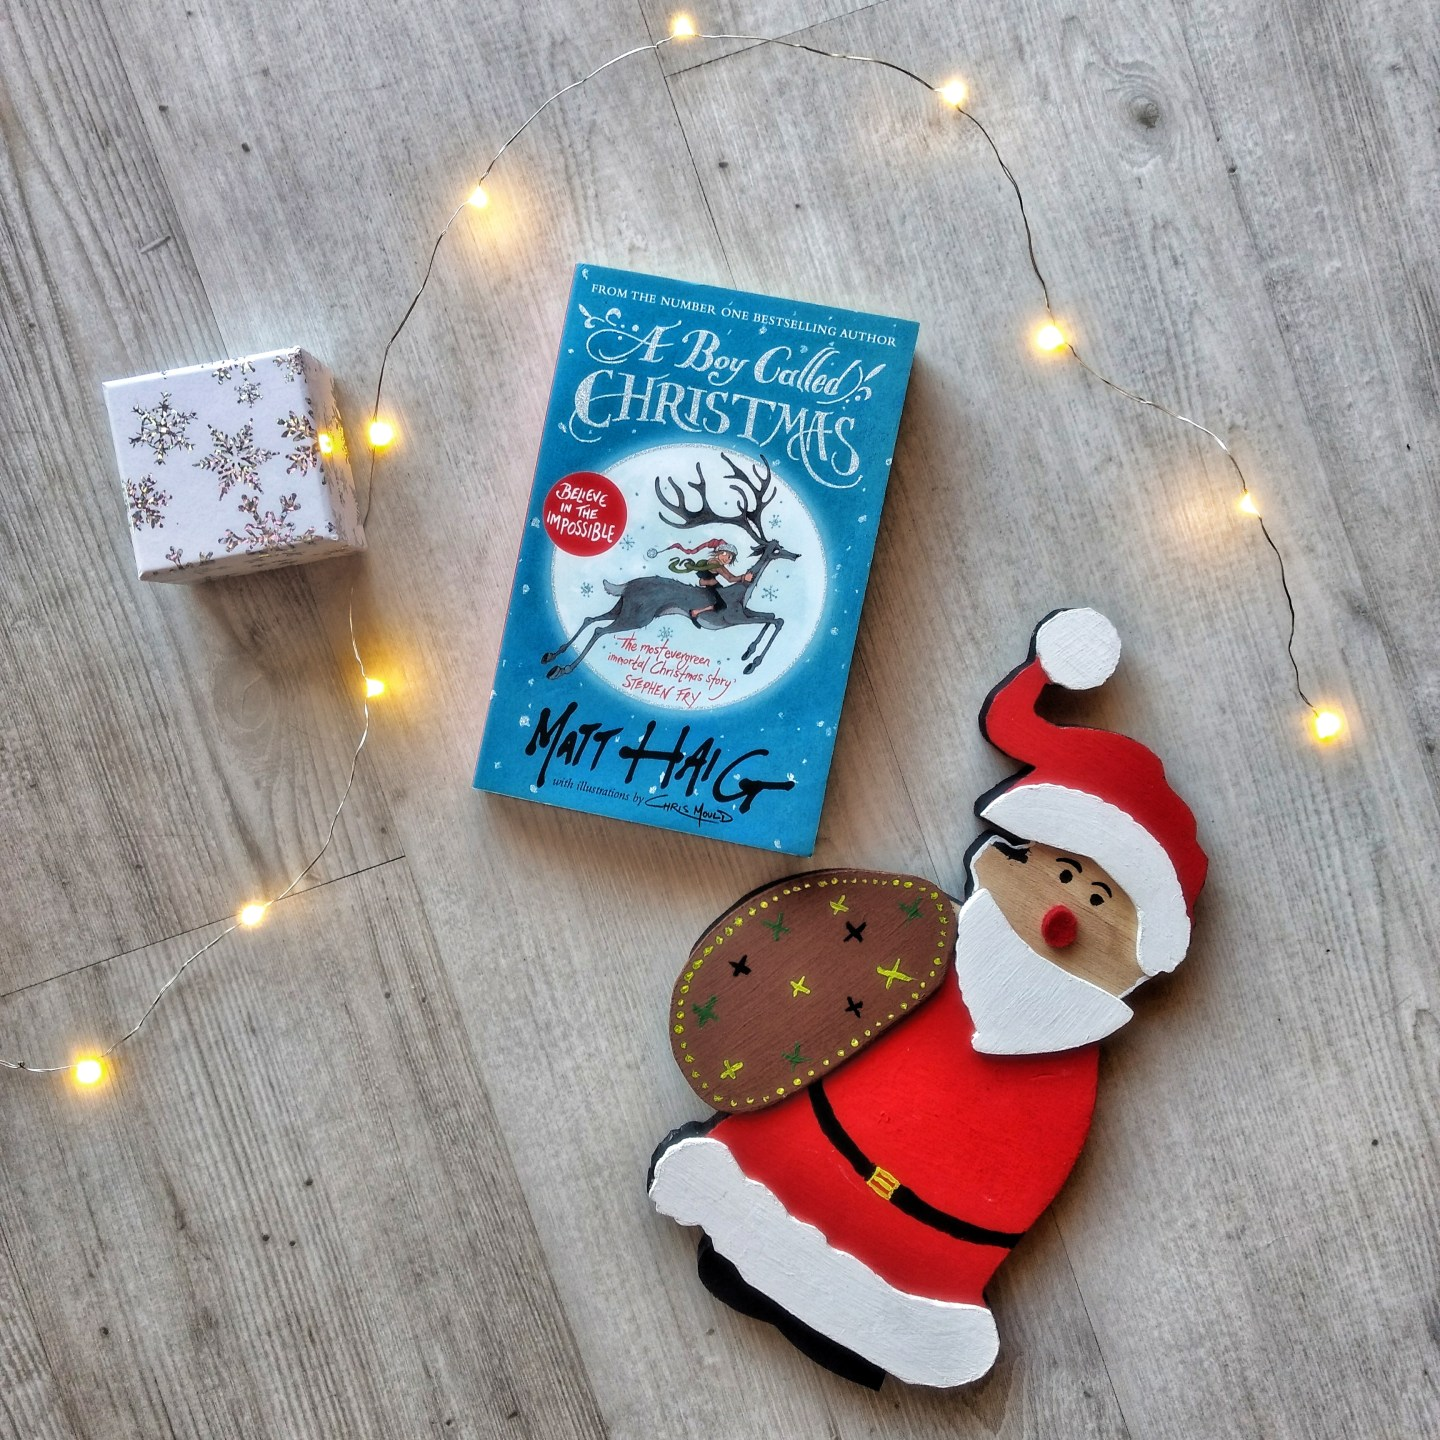 A Boy Called Christmas – Matt Haig